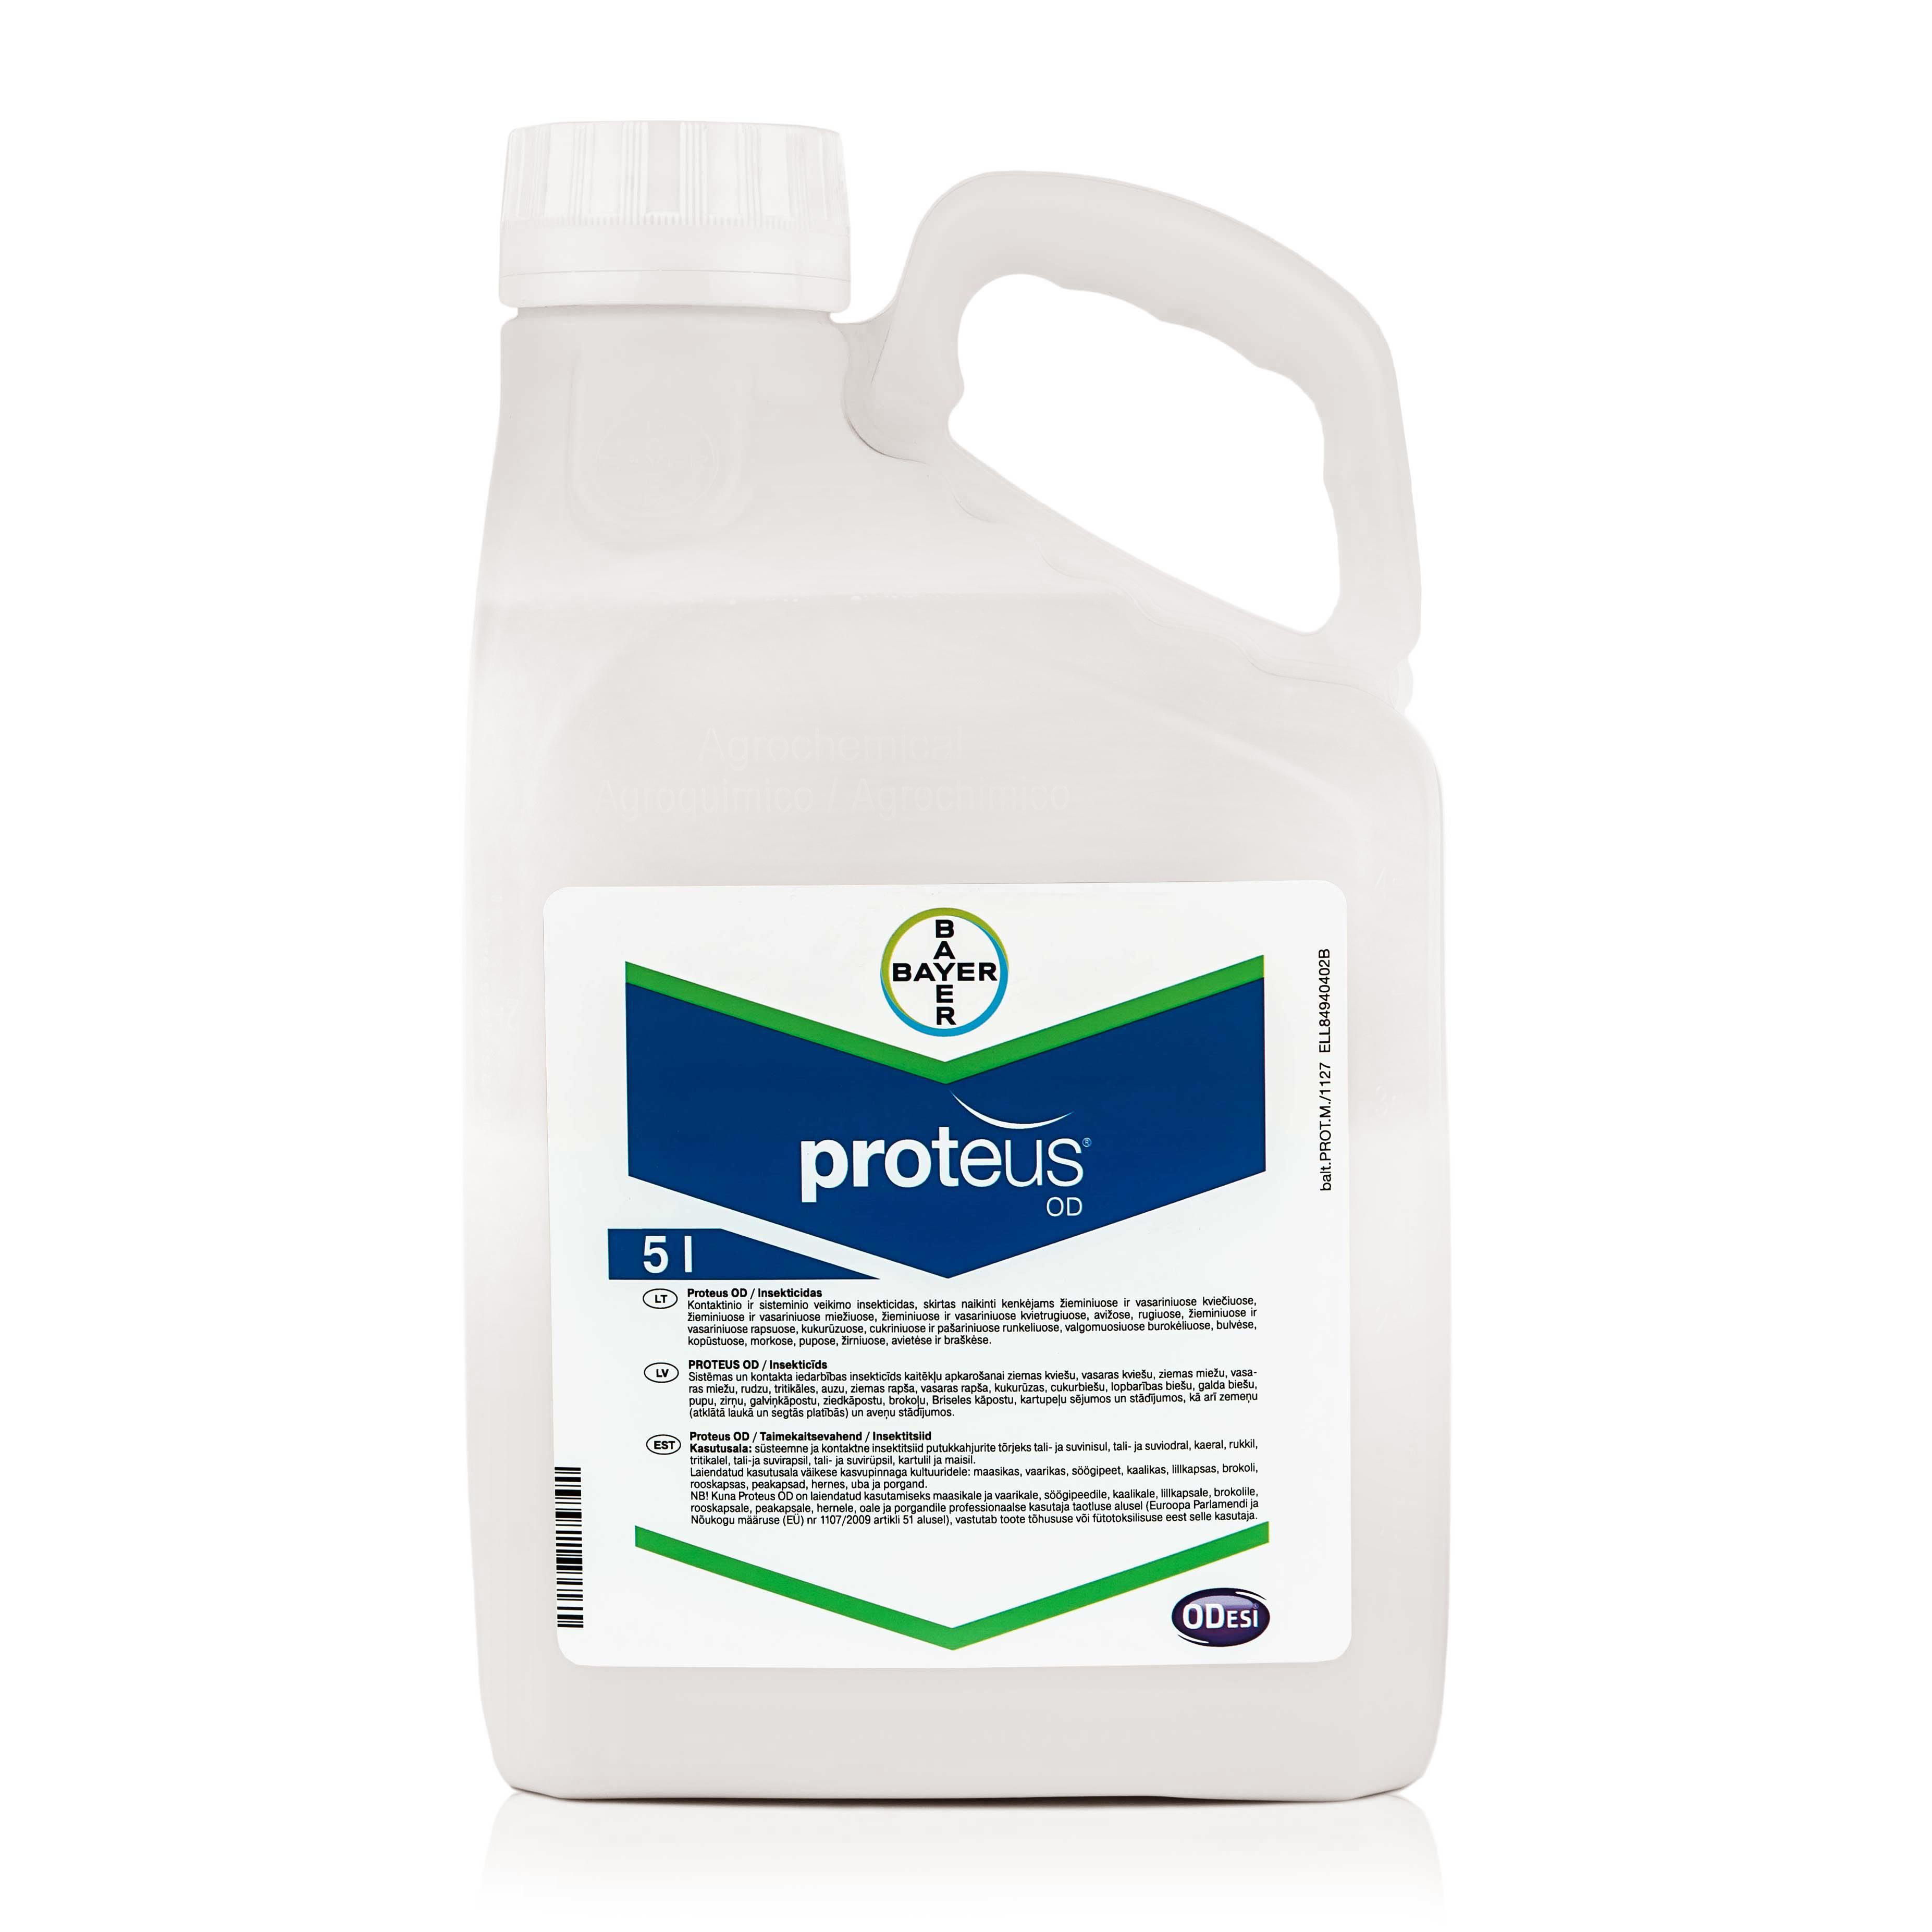 Proteus od insecticida bayer